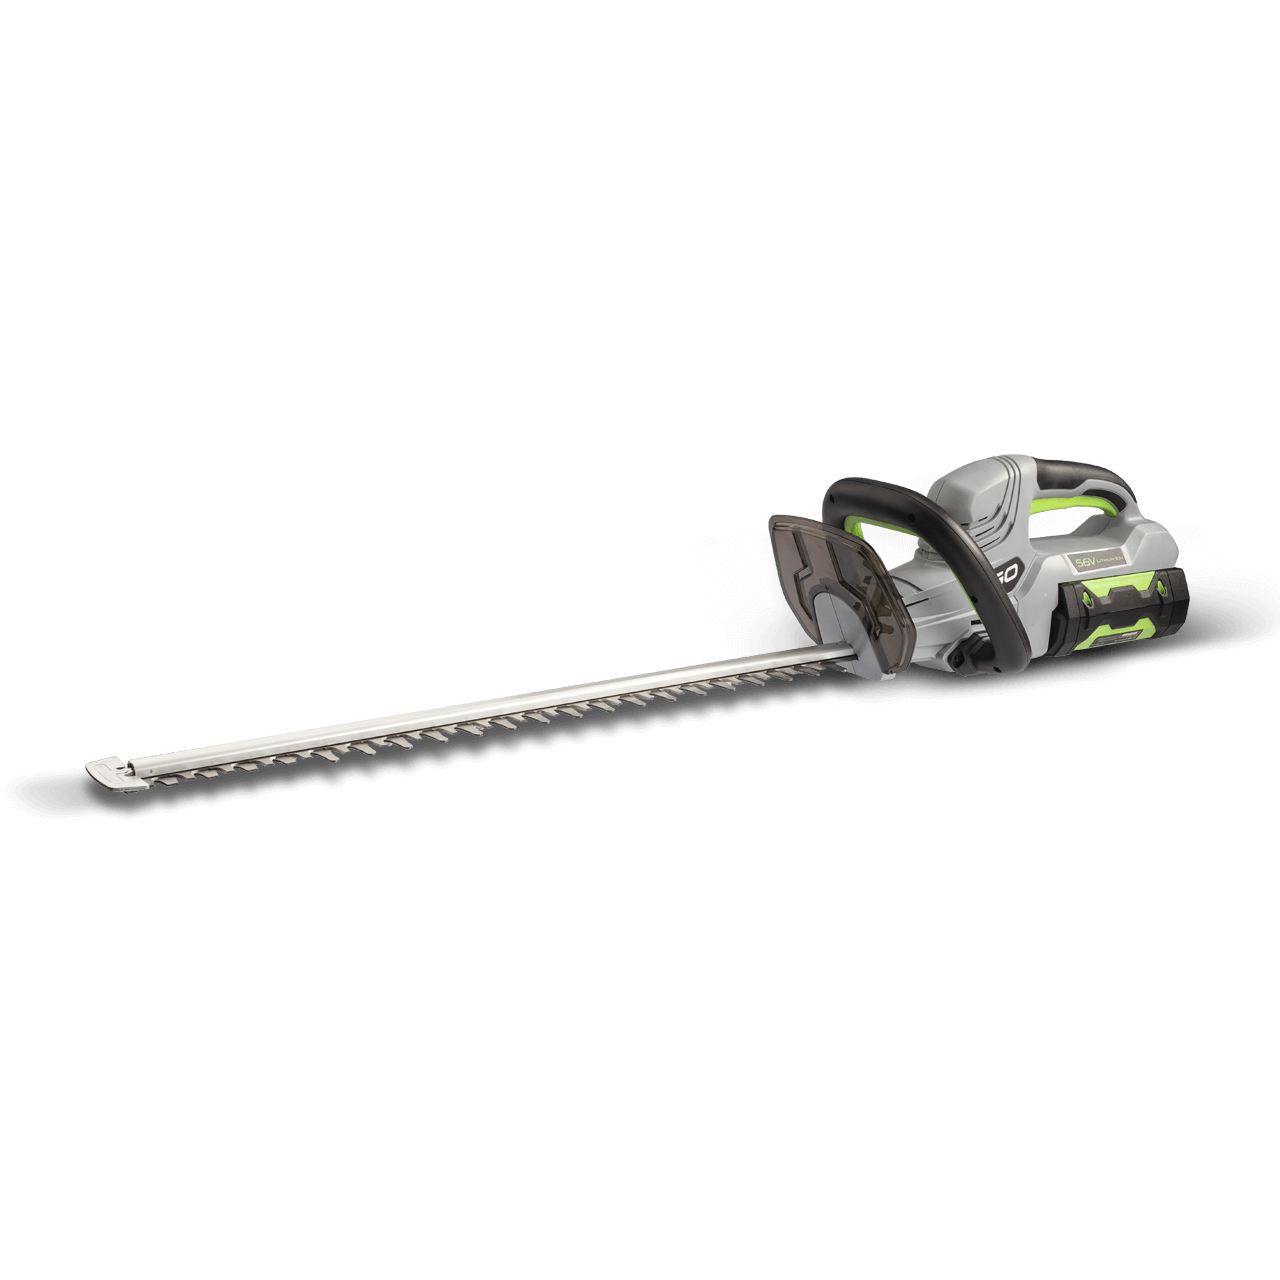 EGO HT2400E Hedge Trimmer (shell only)